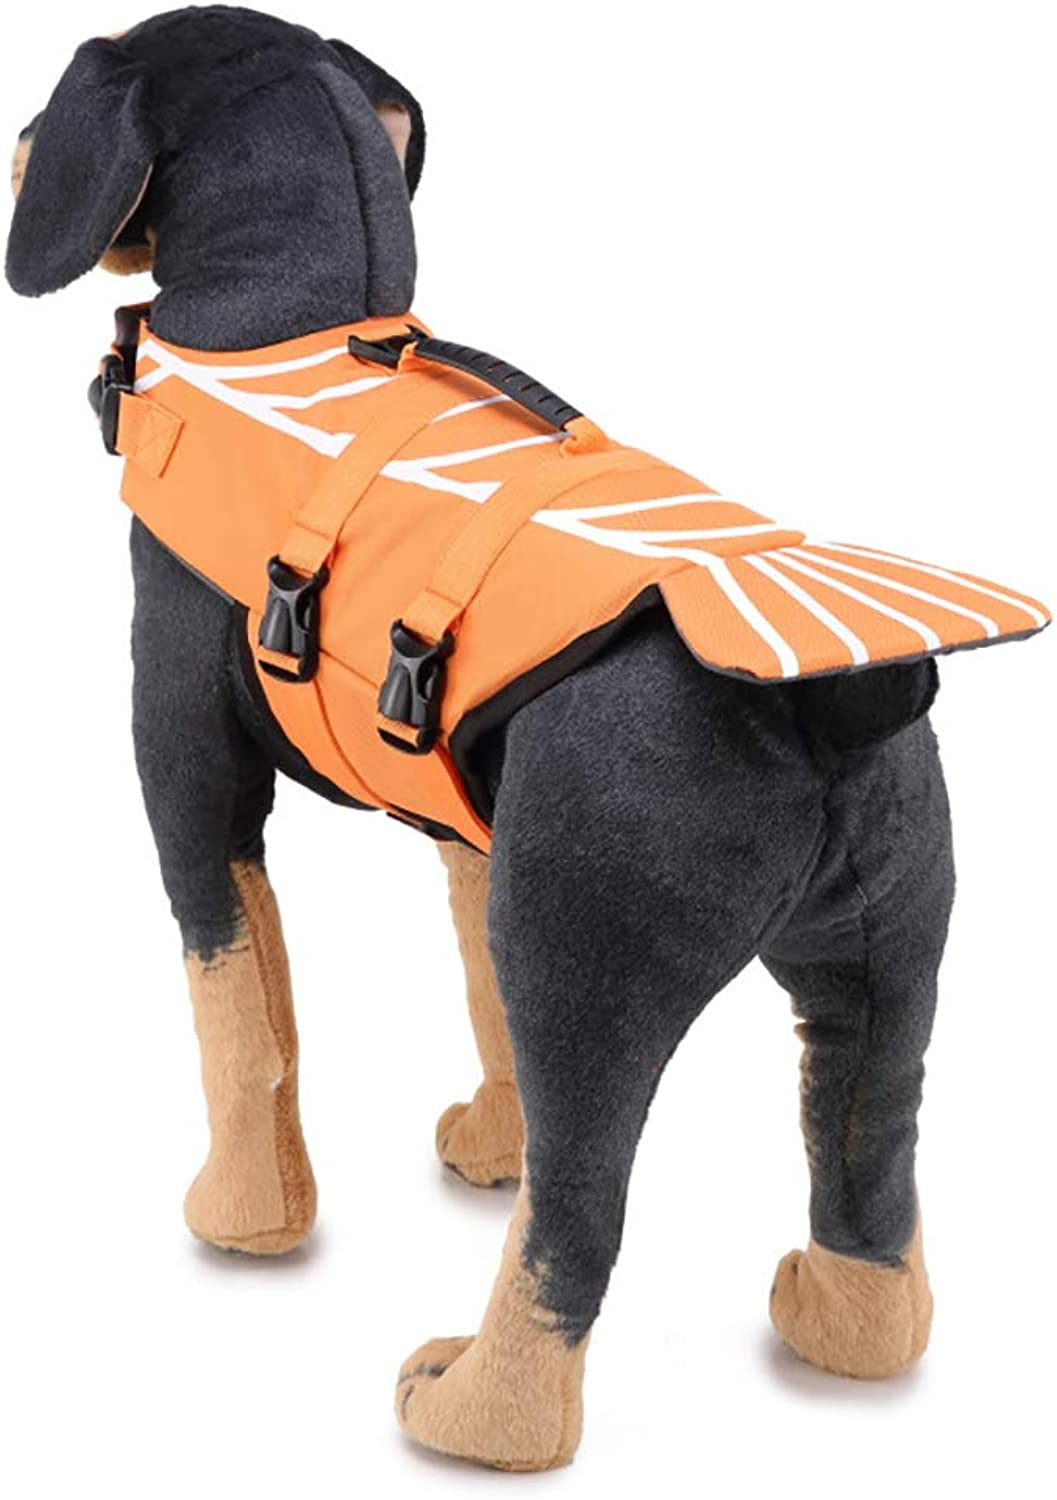 Lightweigh Dog Life Jackets Polyester Fish Style Floatation Vest with Adjustable Soft Rubber Handle Swimming Vest,M